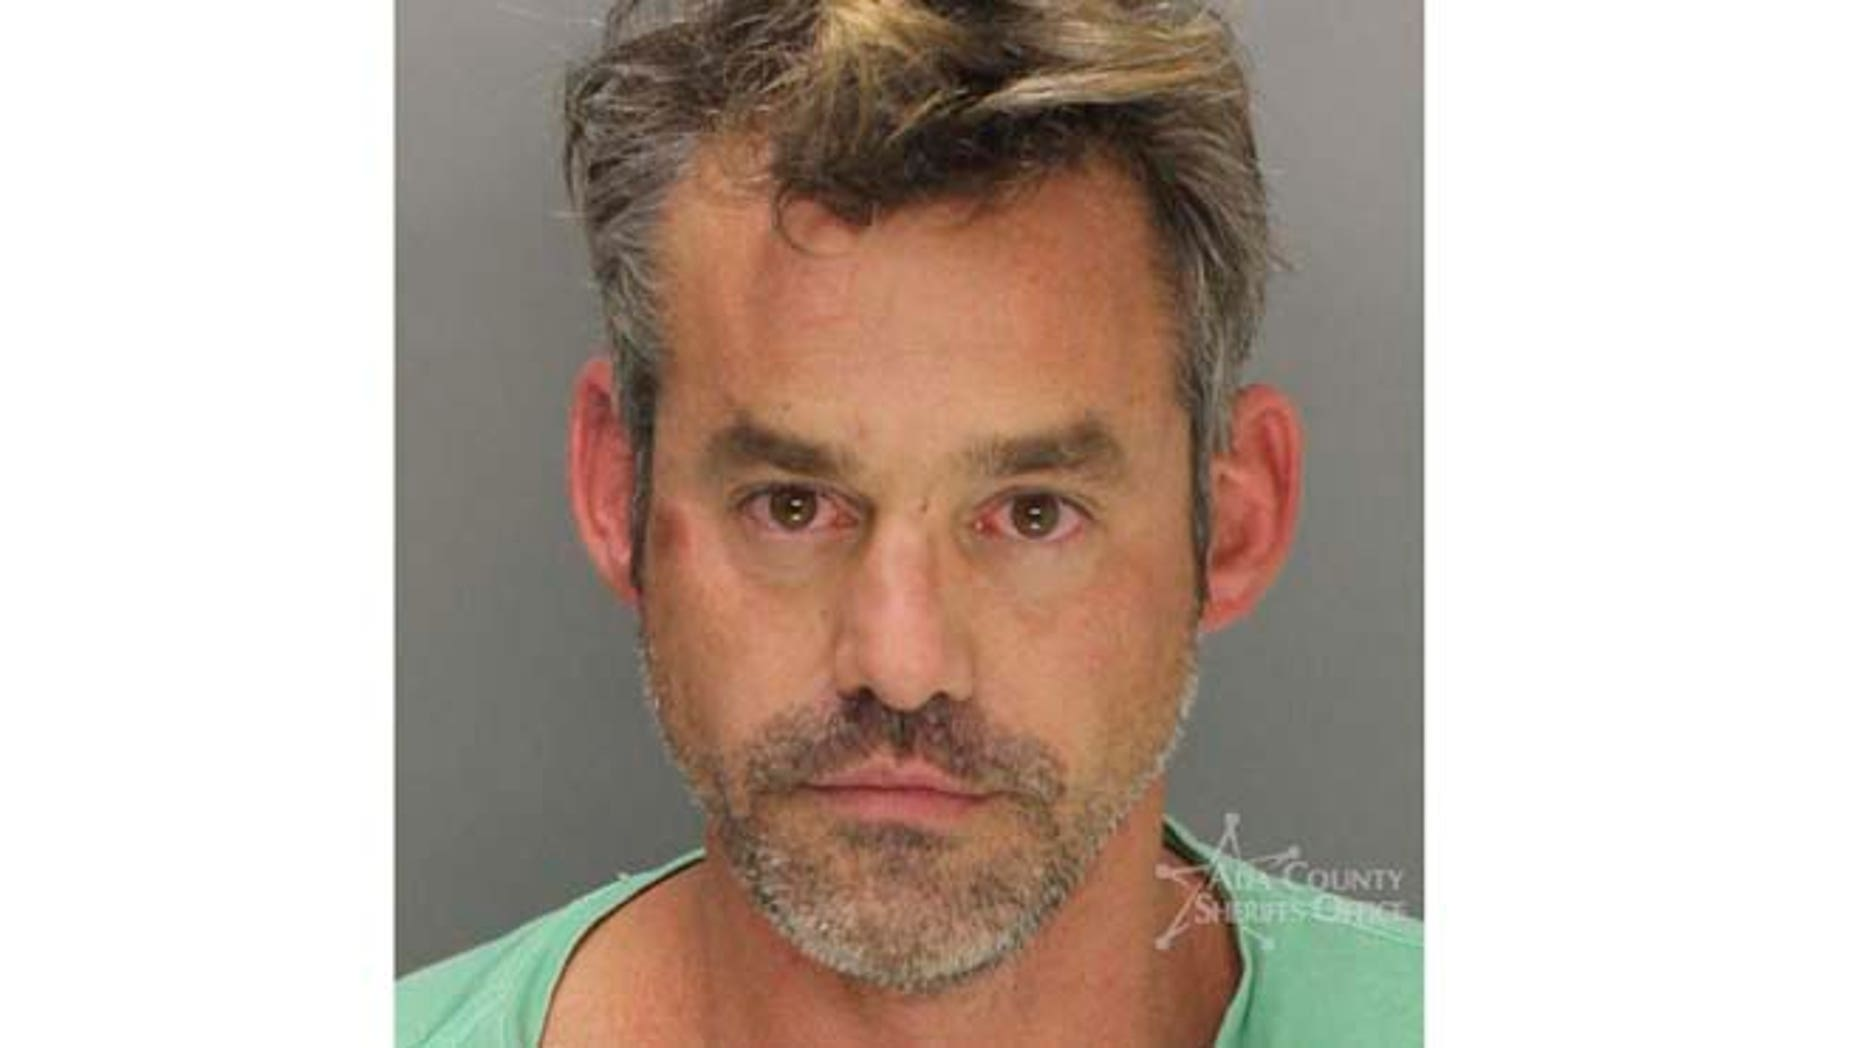 Oct. 17, 2014: The booking photo provided by Ada County Sheriff of actor Nicholas Brendon, of Sherman Oaks, Calif., after he was arrested in Boise, Idaho. (AP/Ada County Sheriff)